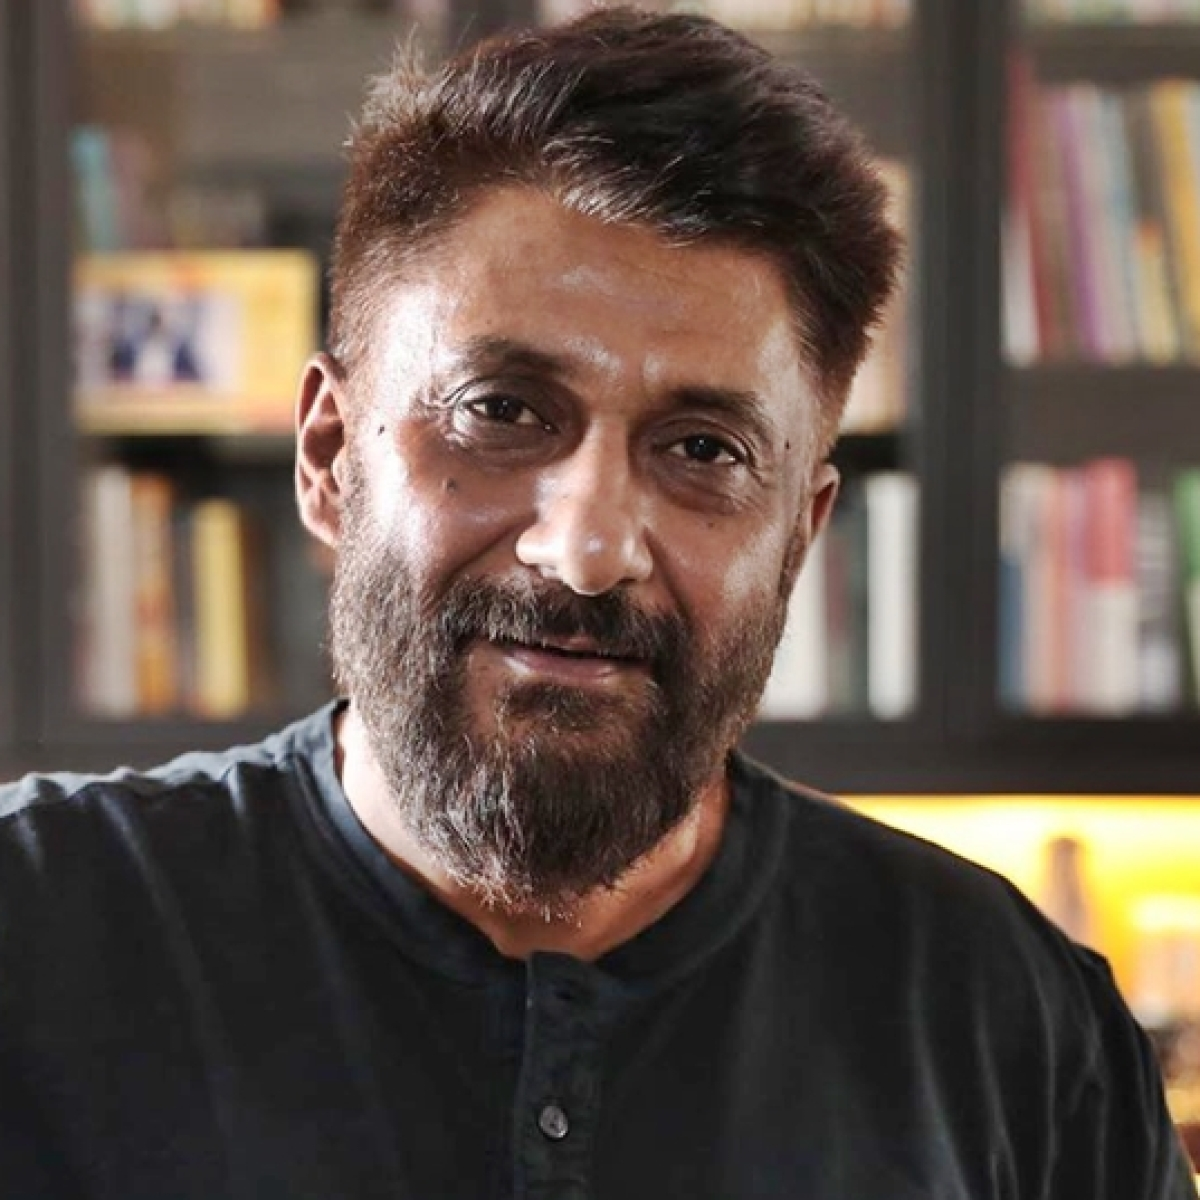 Vivek Agnihotri appointed as new cultural representative at Indian Council for Cultural Relations; Twitter says nepotism was better